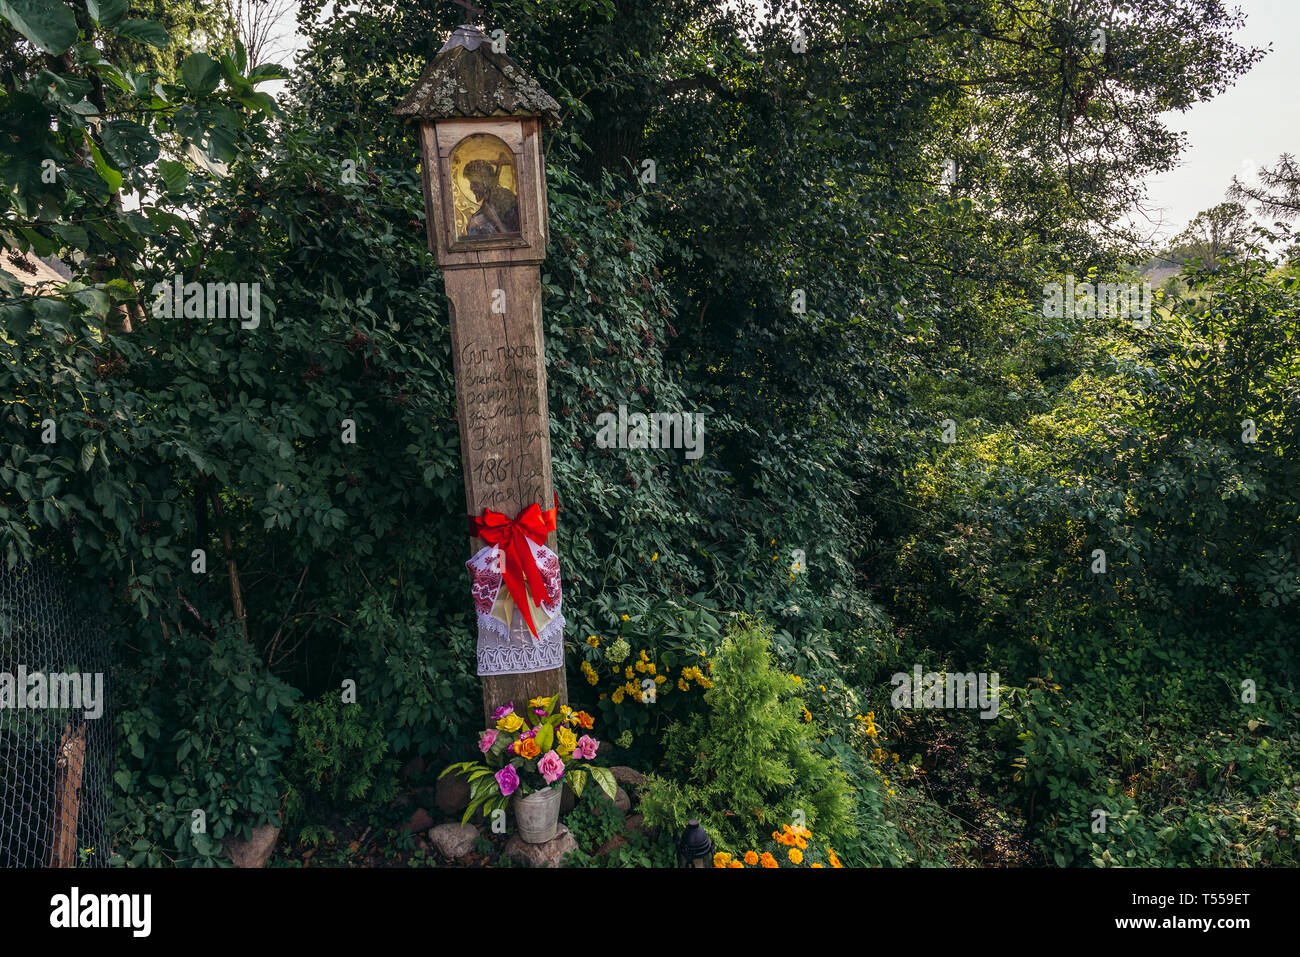 Old shrine in Soce village on so called The Land of Open Shutters trail, famous for traditional architecture in Podlaskie Voivodeship, Poland - Stock Image